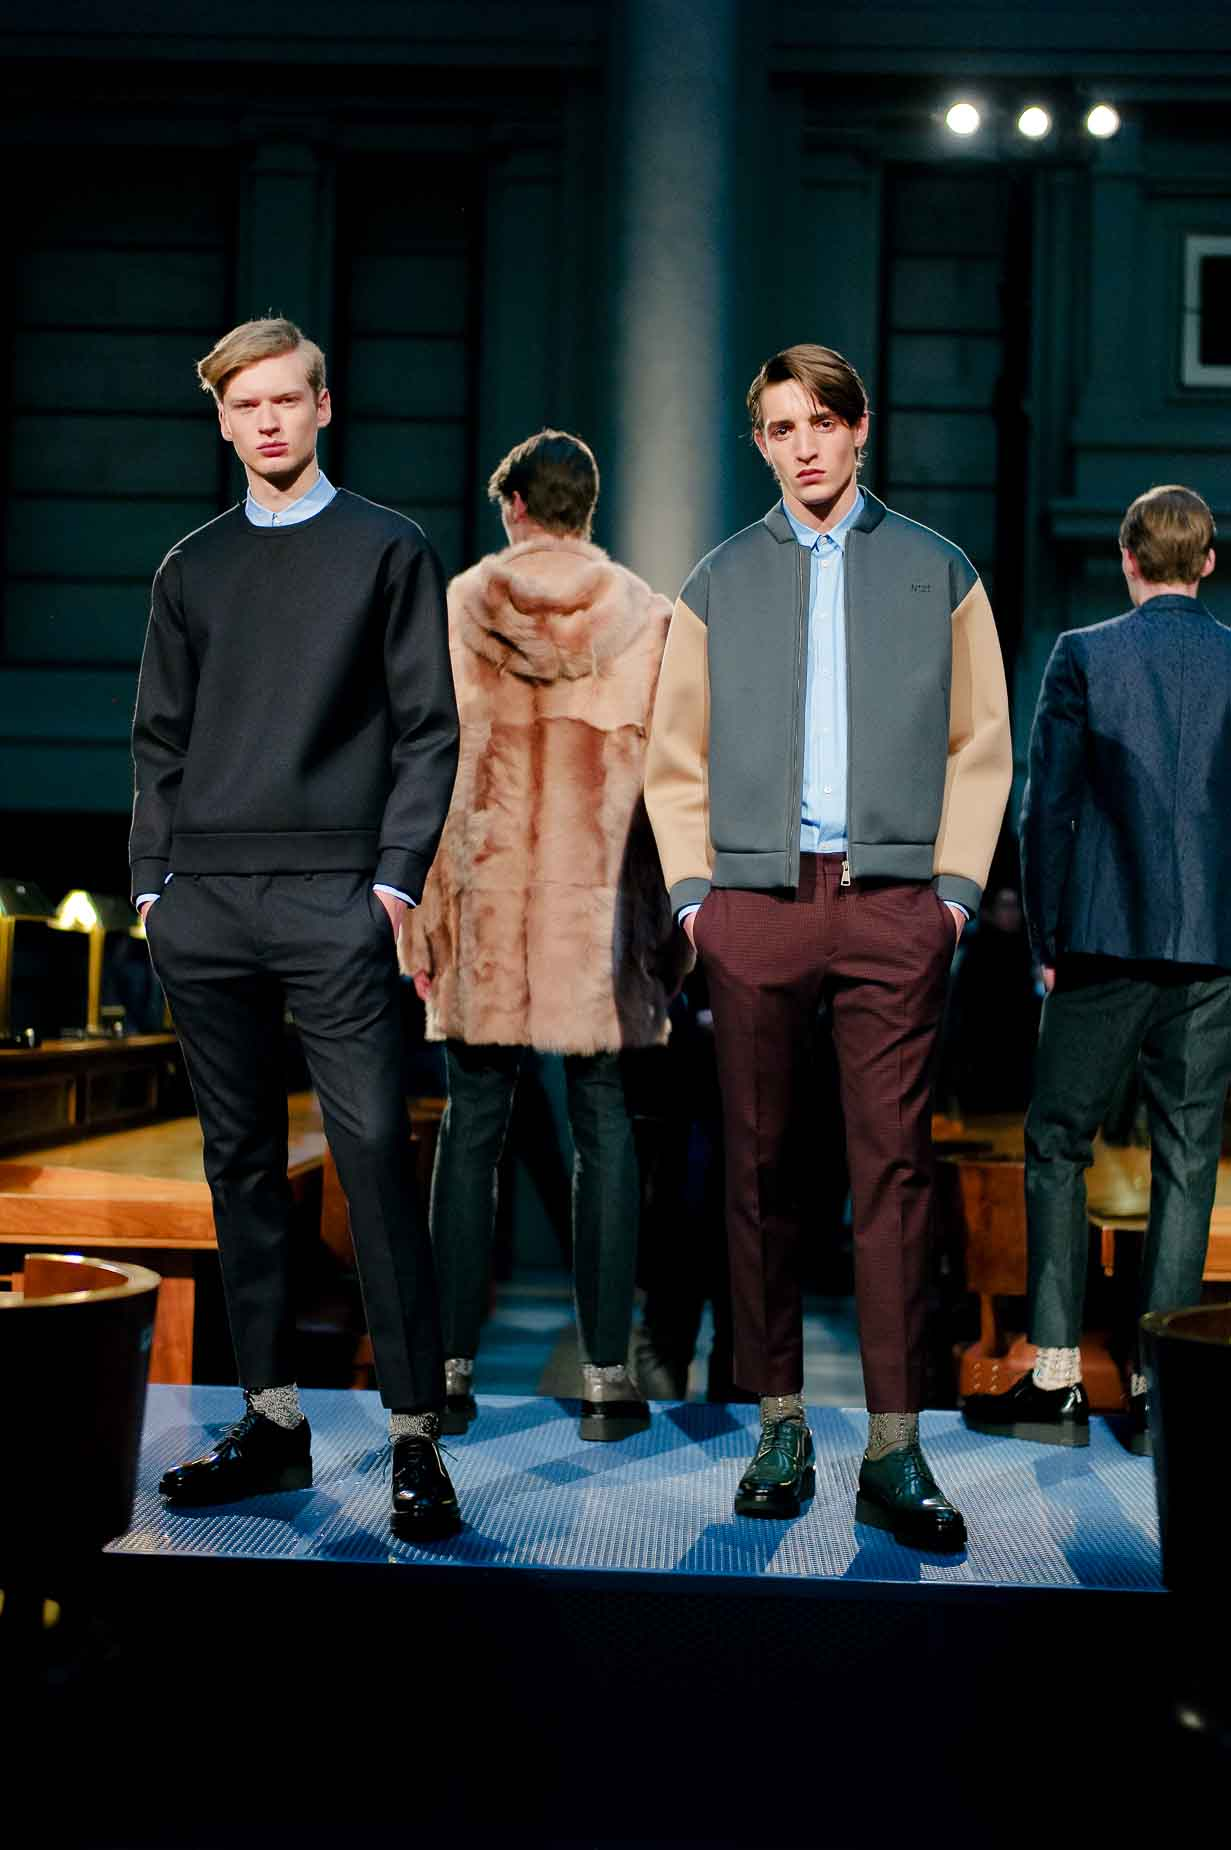 N21 Fall Winter 2014 Mens Collection Pitti Immagine Uomo